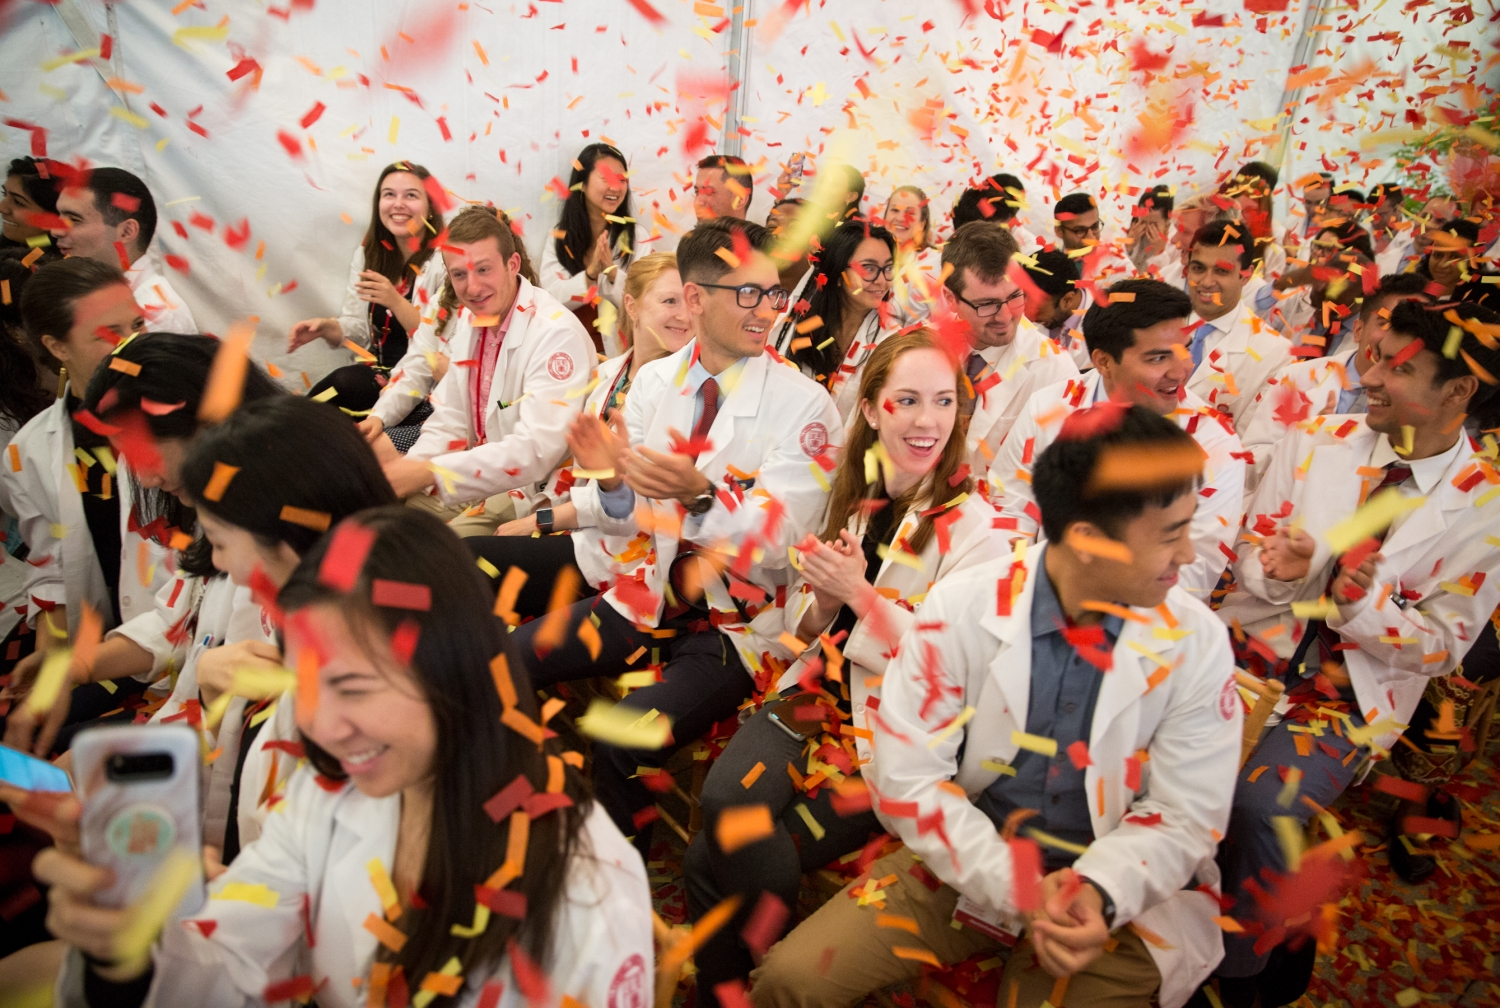 Students celebrating at an event